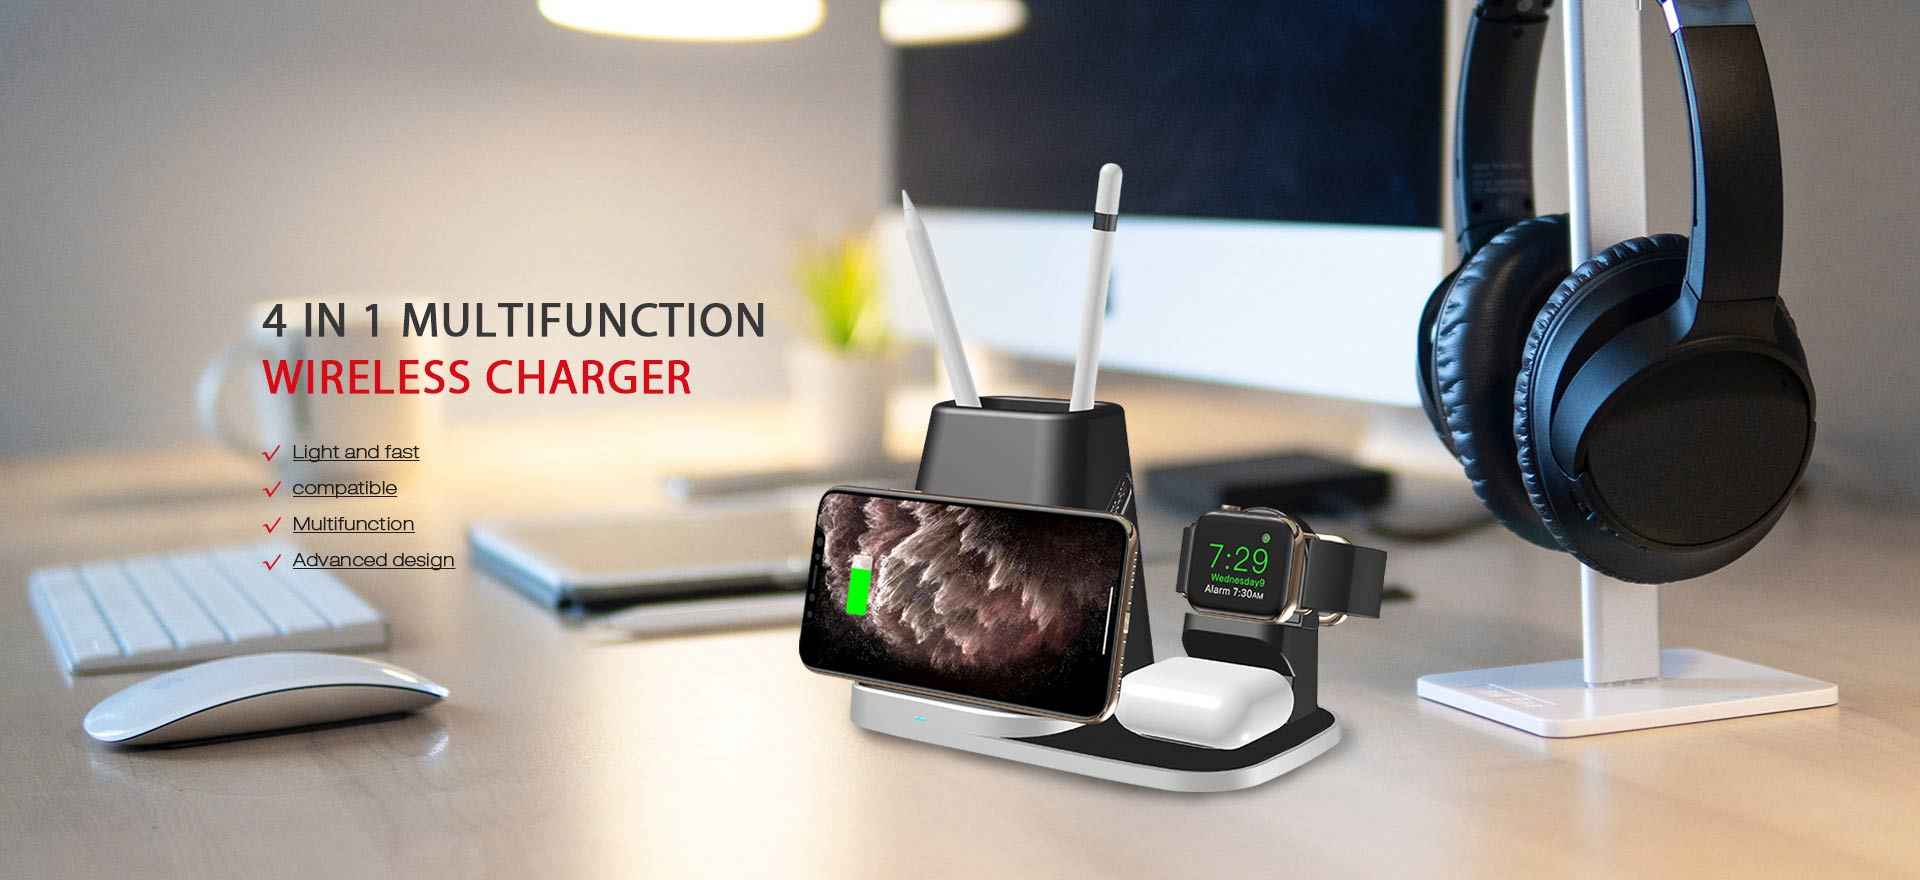 New Design 4 in 1 Offices Multifunctional Pen Holder Wireless Charger For Smartphone/iWatch/Airpods Pro